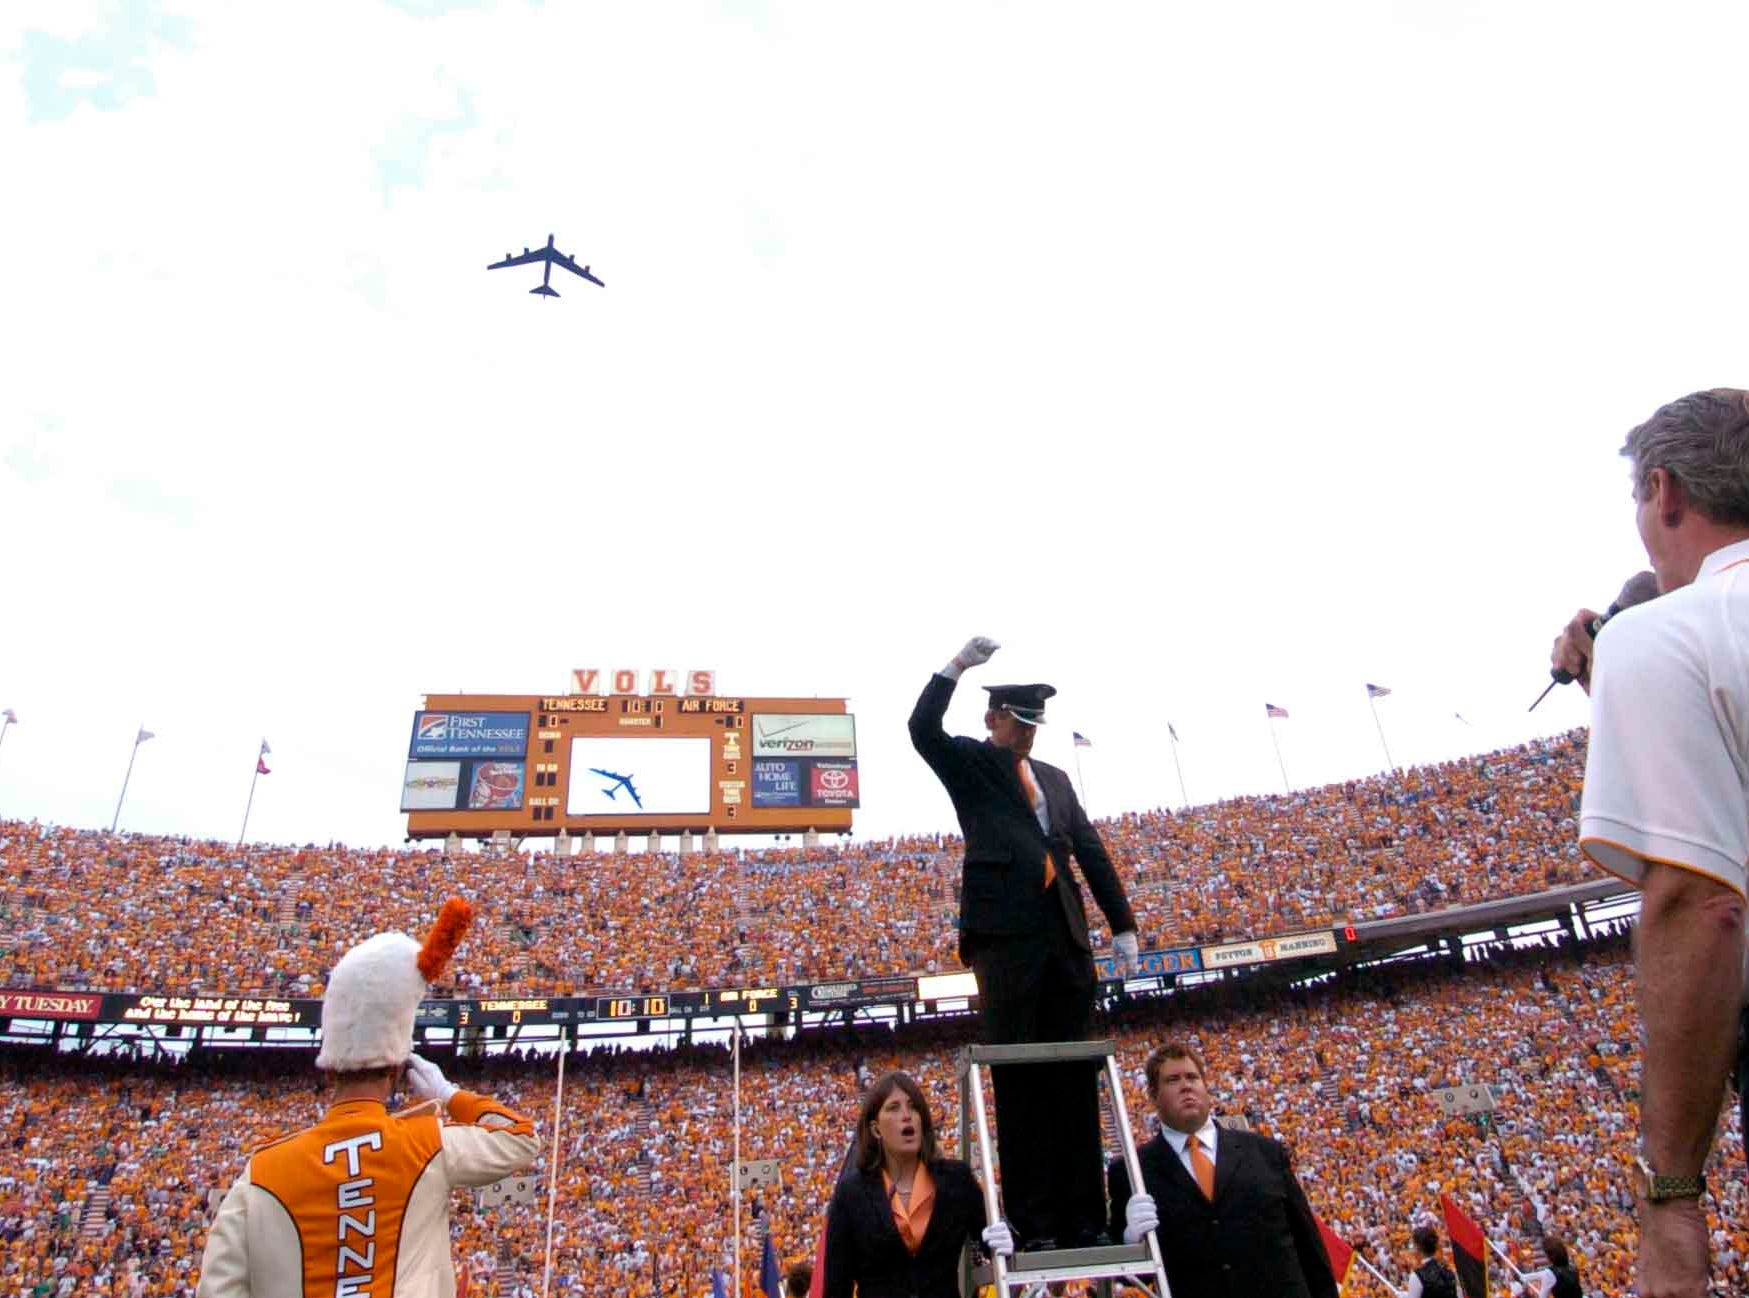 Andy Wentzel, right, sings the National Anthem as an Air Force B-52 Stratofortress does a fly over Saturday at Neyland Stadium. The B-52, commanded by Air Force Academy graduate Lt Col Kent Schultz, is from the 917th WingÕs 93rd Reserve Bomb Squadron, Barksdale AFB, Louisiana.